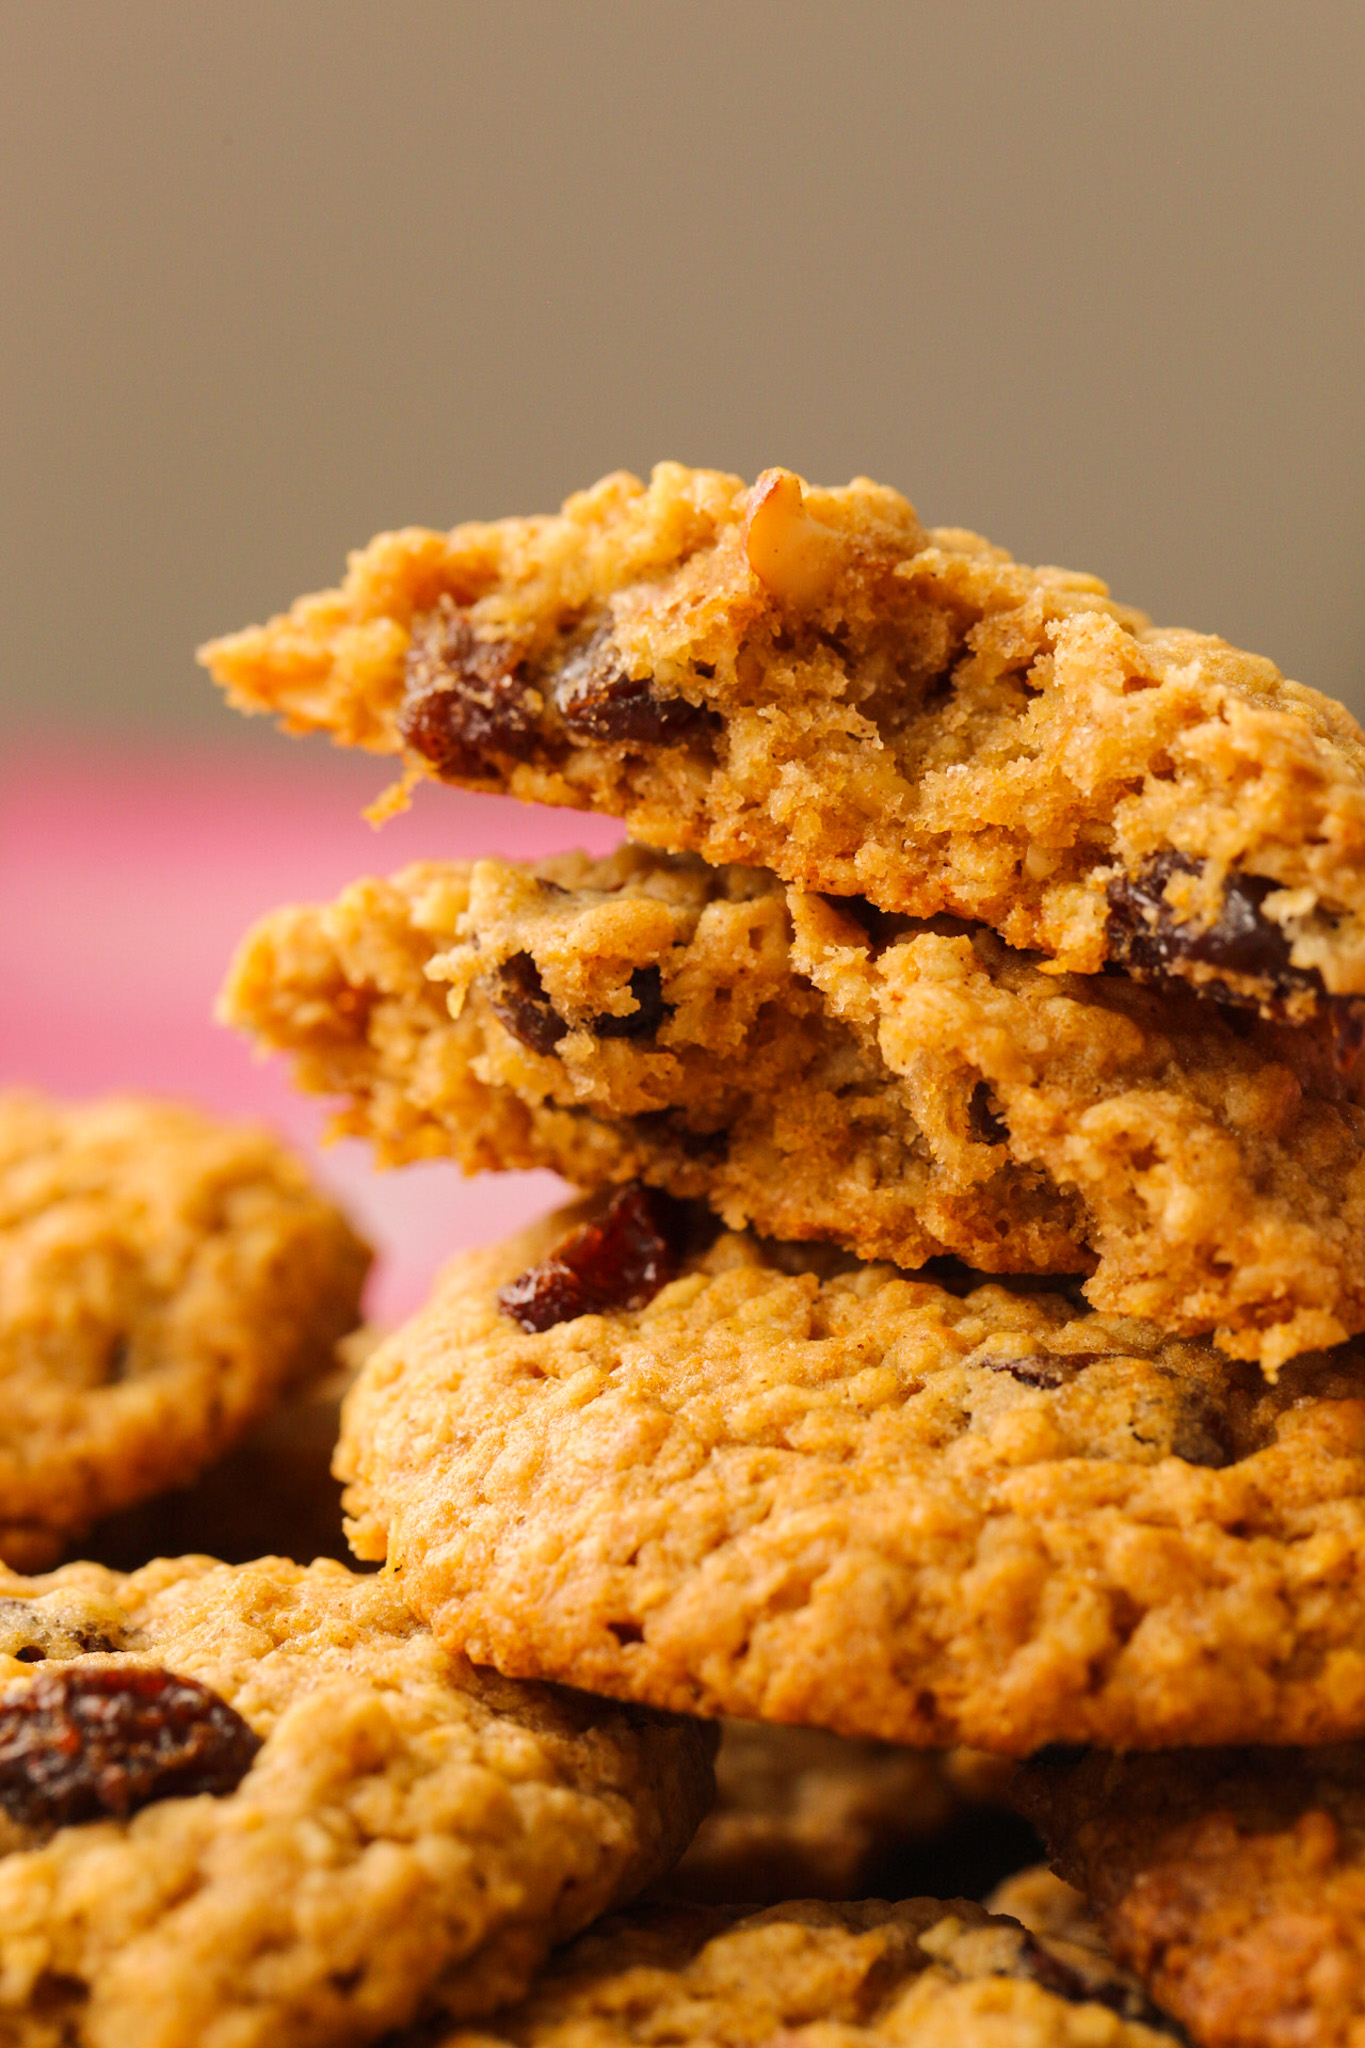 inside of cookies with oats and raisins